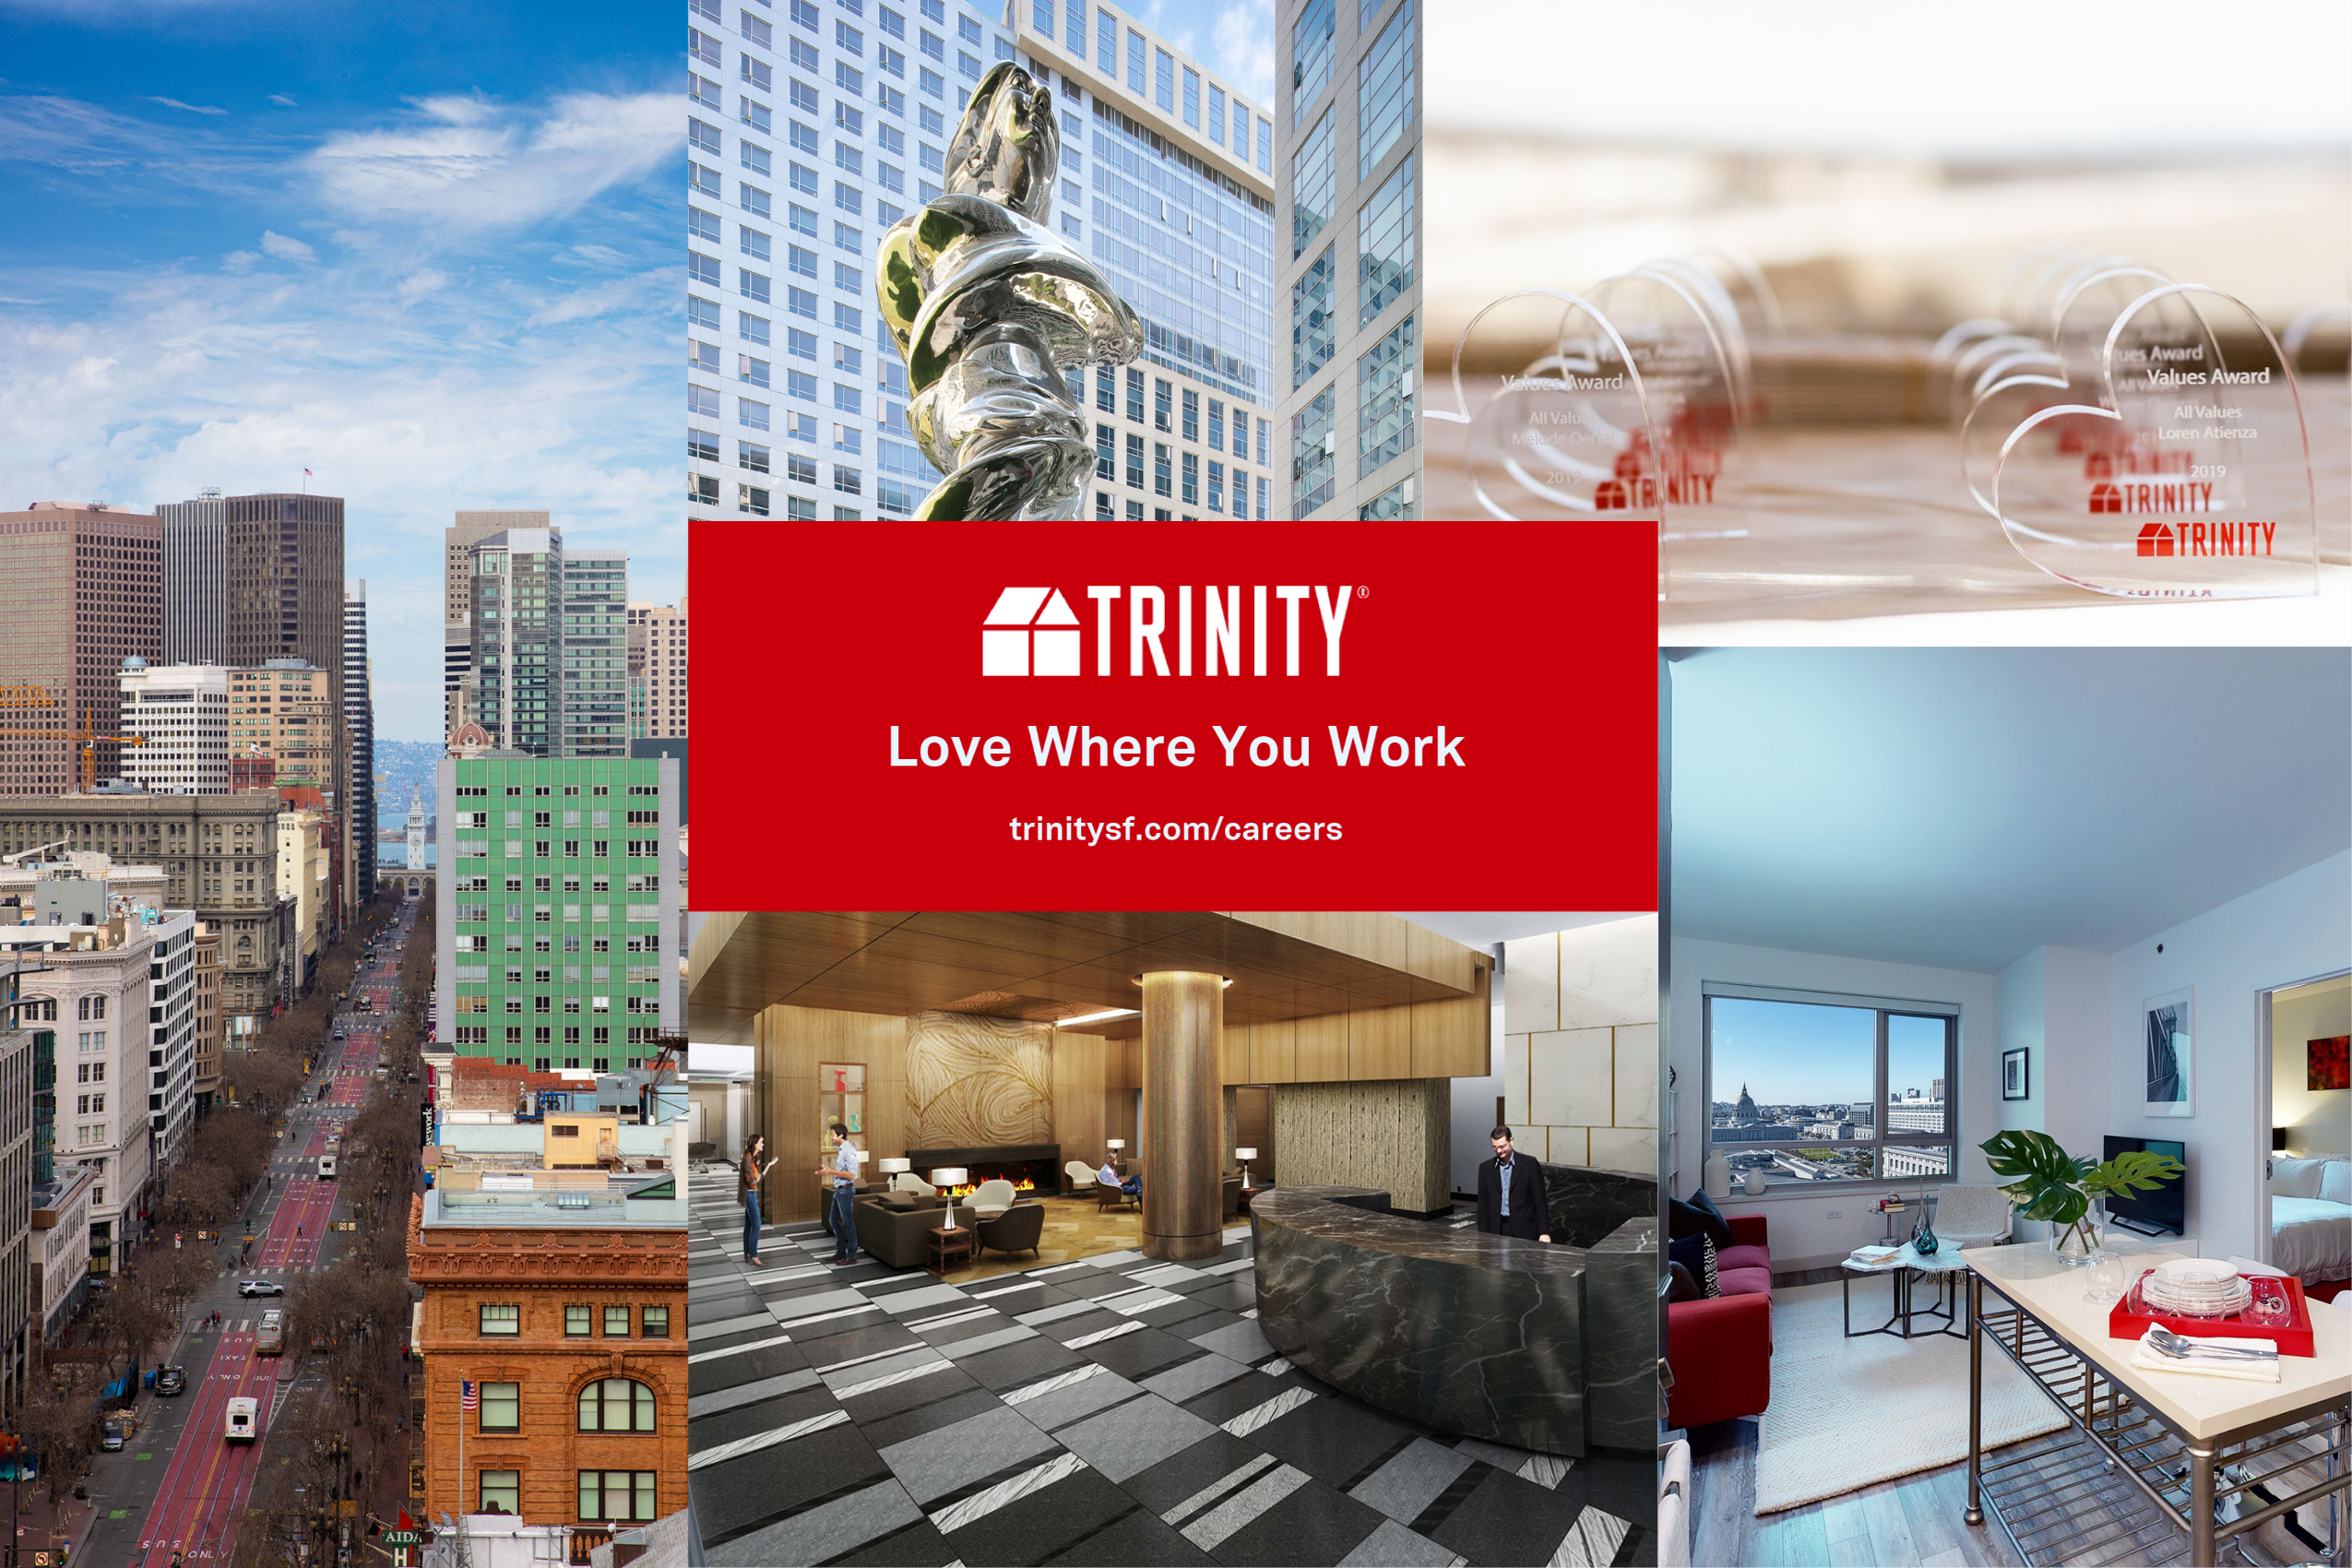 Visit trinitysf.com/careers to see all currently available roles